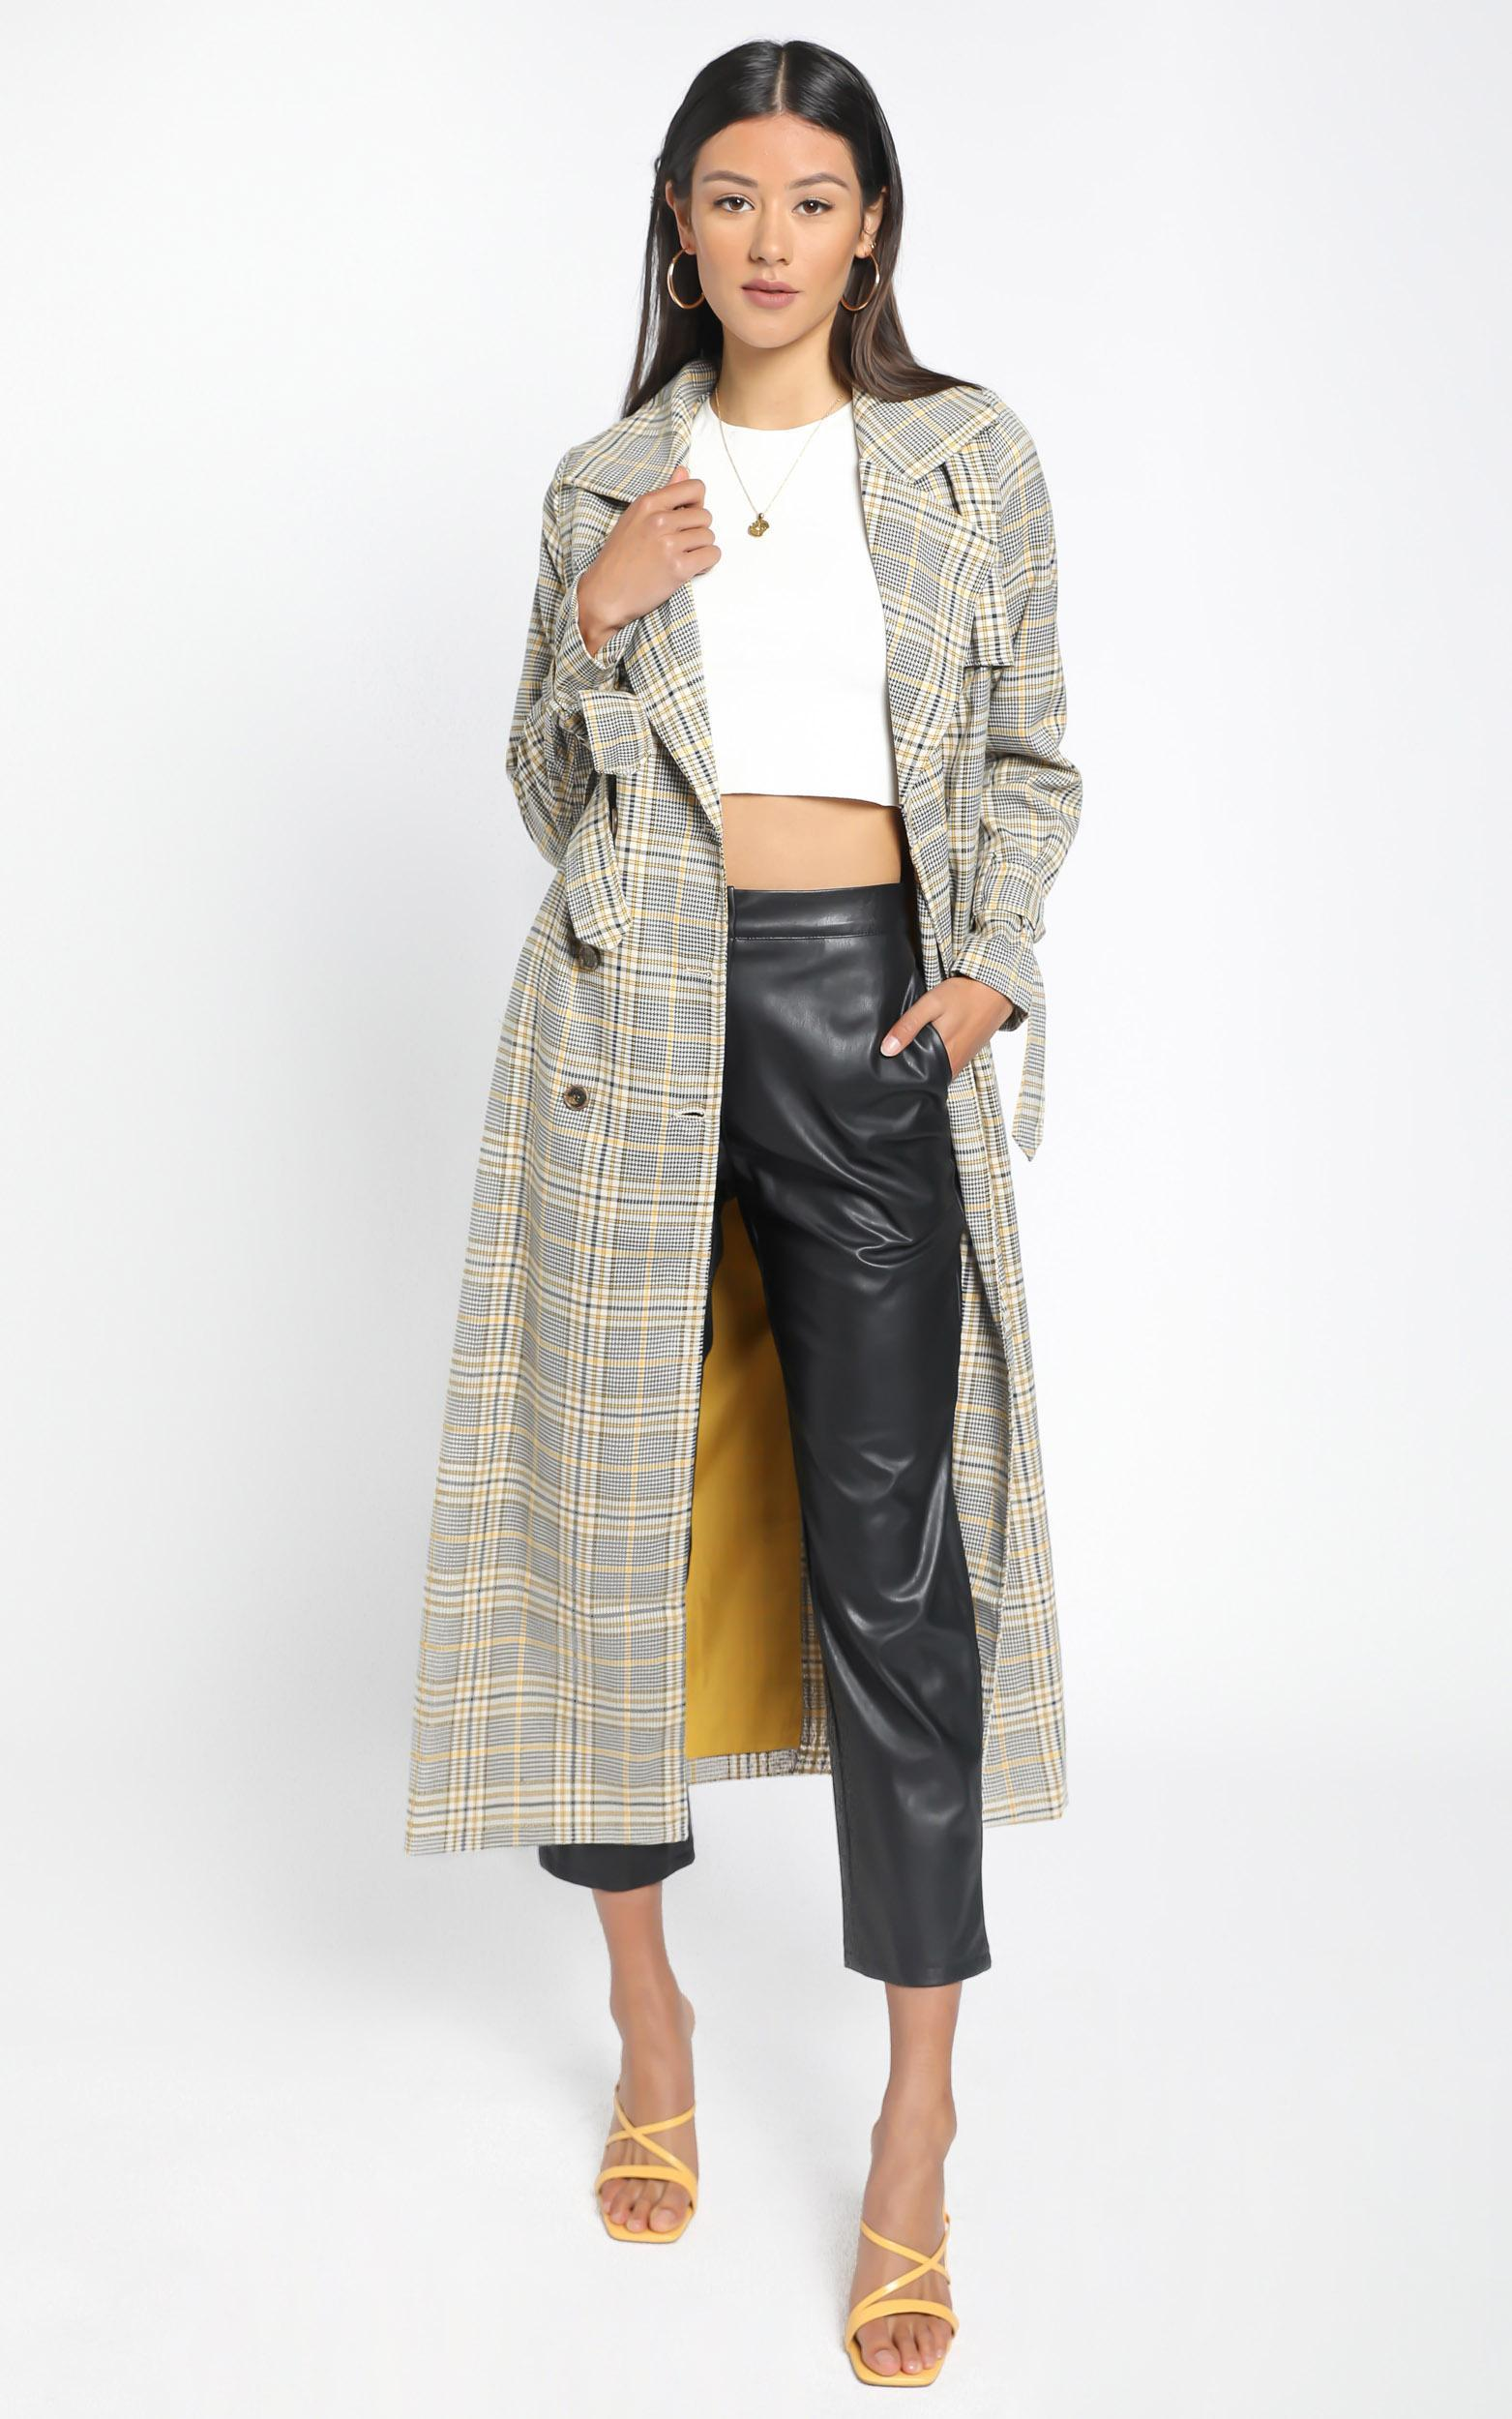 We Could Be Heroes Trench Coat in camel check - 6 (XS), Camel, hi-res image number null